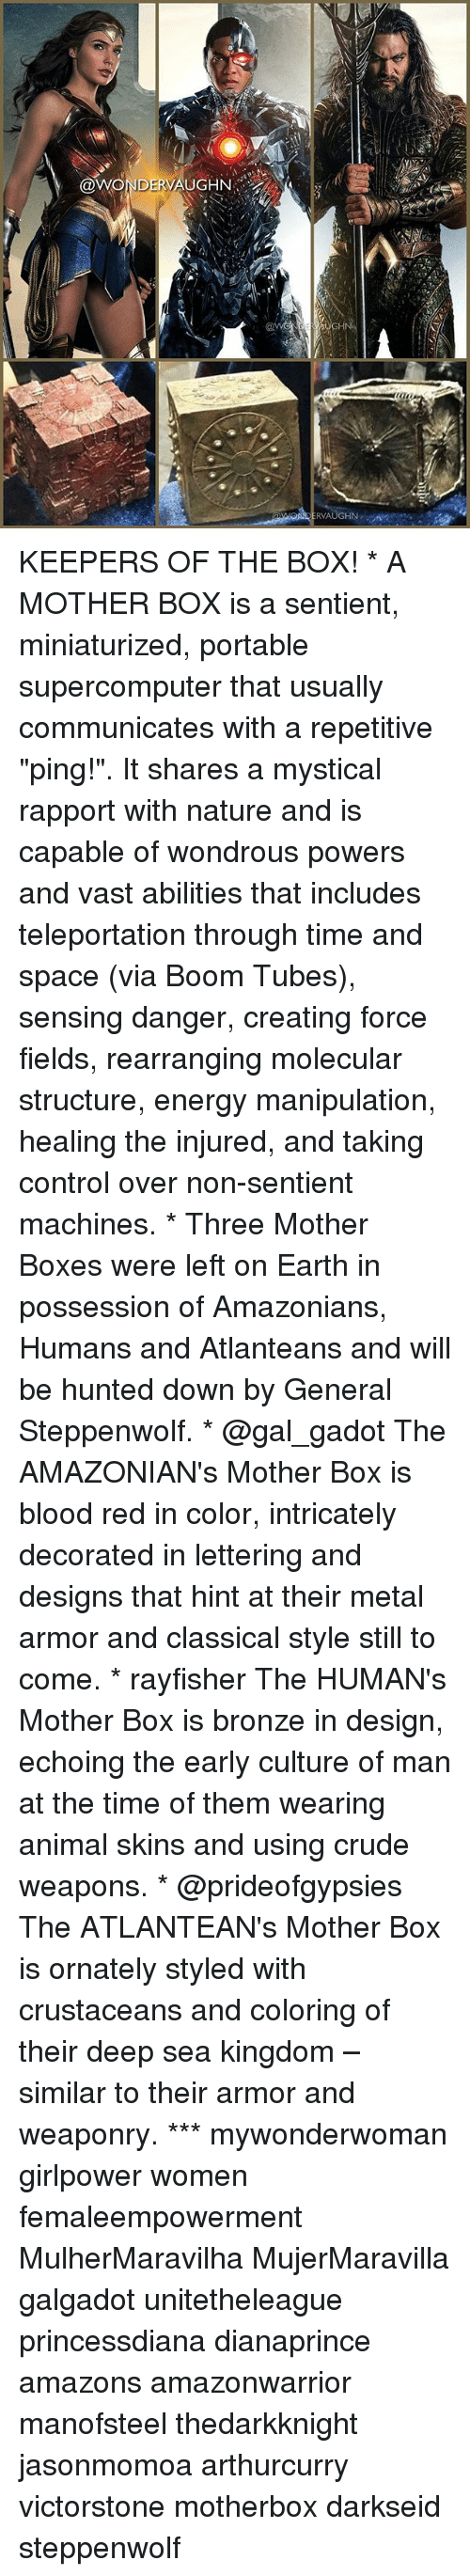 """teleportation: @WONDERVAUGH  @vVONI  AUGHN!..  R, / KEEPERS OF THE BOX! * A MOTHER BOX is a sentient, miniaturized, portable supercomputer that usually communicates with a repetitive """"ping!"""". It shares a mystical rapport with nature and is capable of wondrous powers and vast abilities that includes teleportation through time and space (via Boom Tubes), sensing danger, creating force fields, rearranging molecular structure, energy manipulation, healing the injured, and taking control over non-sentient machines. * Three Mother Boxes were left on Earth in possession of Amazonians, Humans and Atlanteans and will be hunted down by General Steppenwolf. * @gal_gadot The AMAZONIAN's Mother Box is blood red in color, intricately decorated in lettering and designs that hint at their metal armor and classical style still to come. * rayfisher The HUMAN's Mother Box is bronze in design, echoing the early culture of man at the time of them wearing animal skins and using crude weapons. * @prideofgypsies The ATLANTEAN's Mother Box is ornately styled with crustaceans and coloring of their deep sea kingdom – similar to their armor and weaponry. *** mywonderwoman girlpower women femaleempowerment MulherMaravilha MujerMaravilla galgadot unitetheleague princessdiana dianaprince amazons amazonwarrior manofsteel thedarkknight jasonmomoa arthurcurry victorstone motherbox darkseid steppenwolf"""